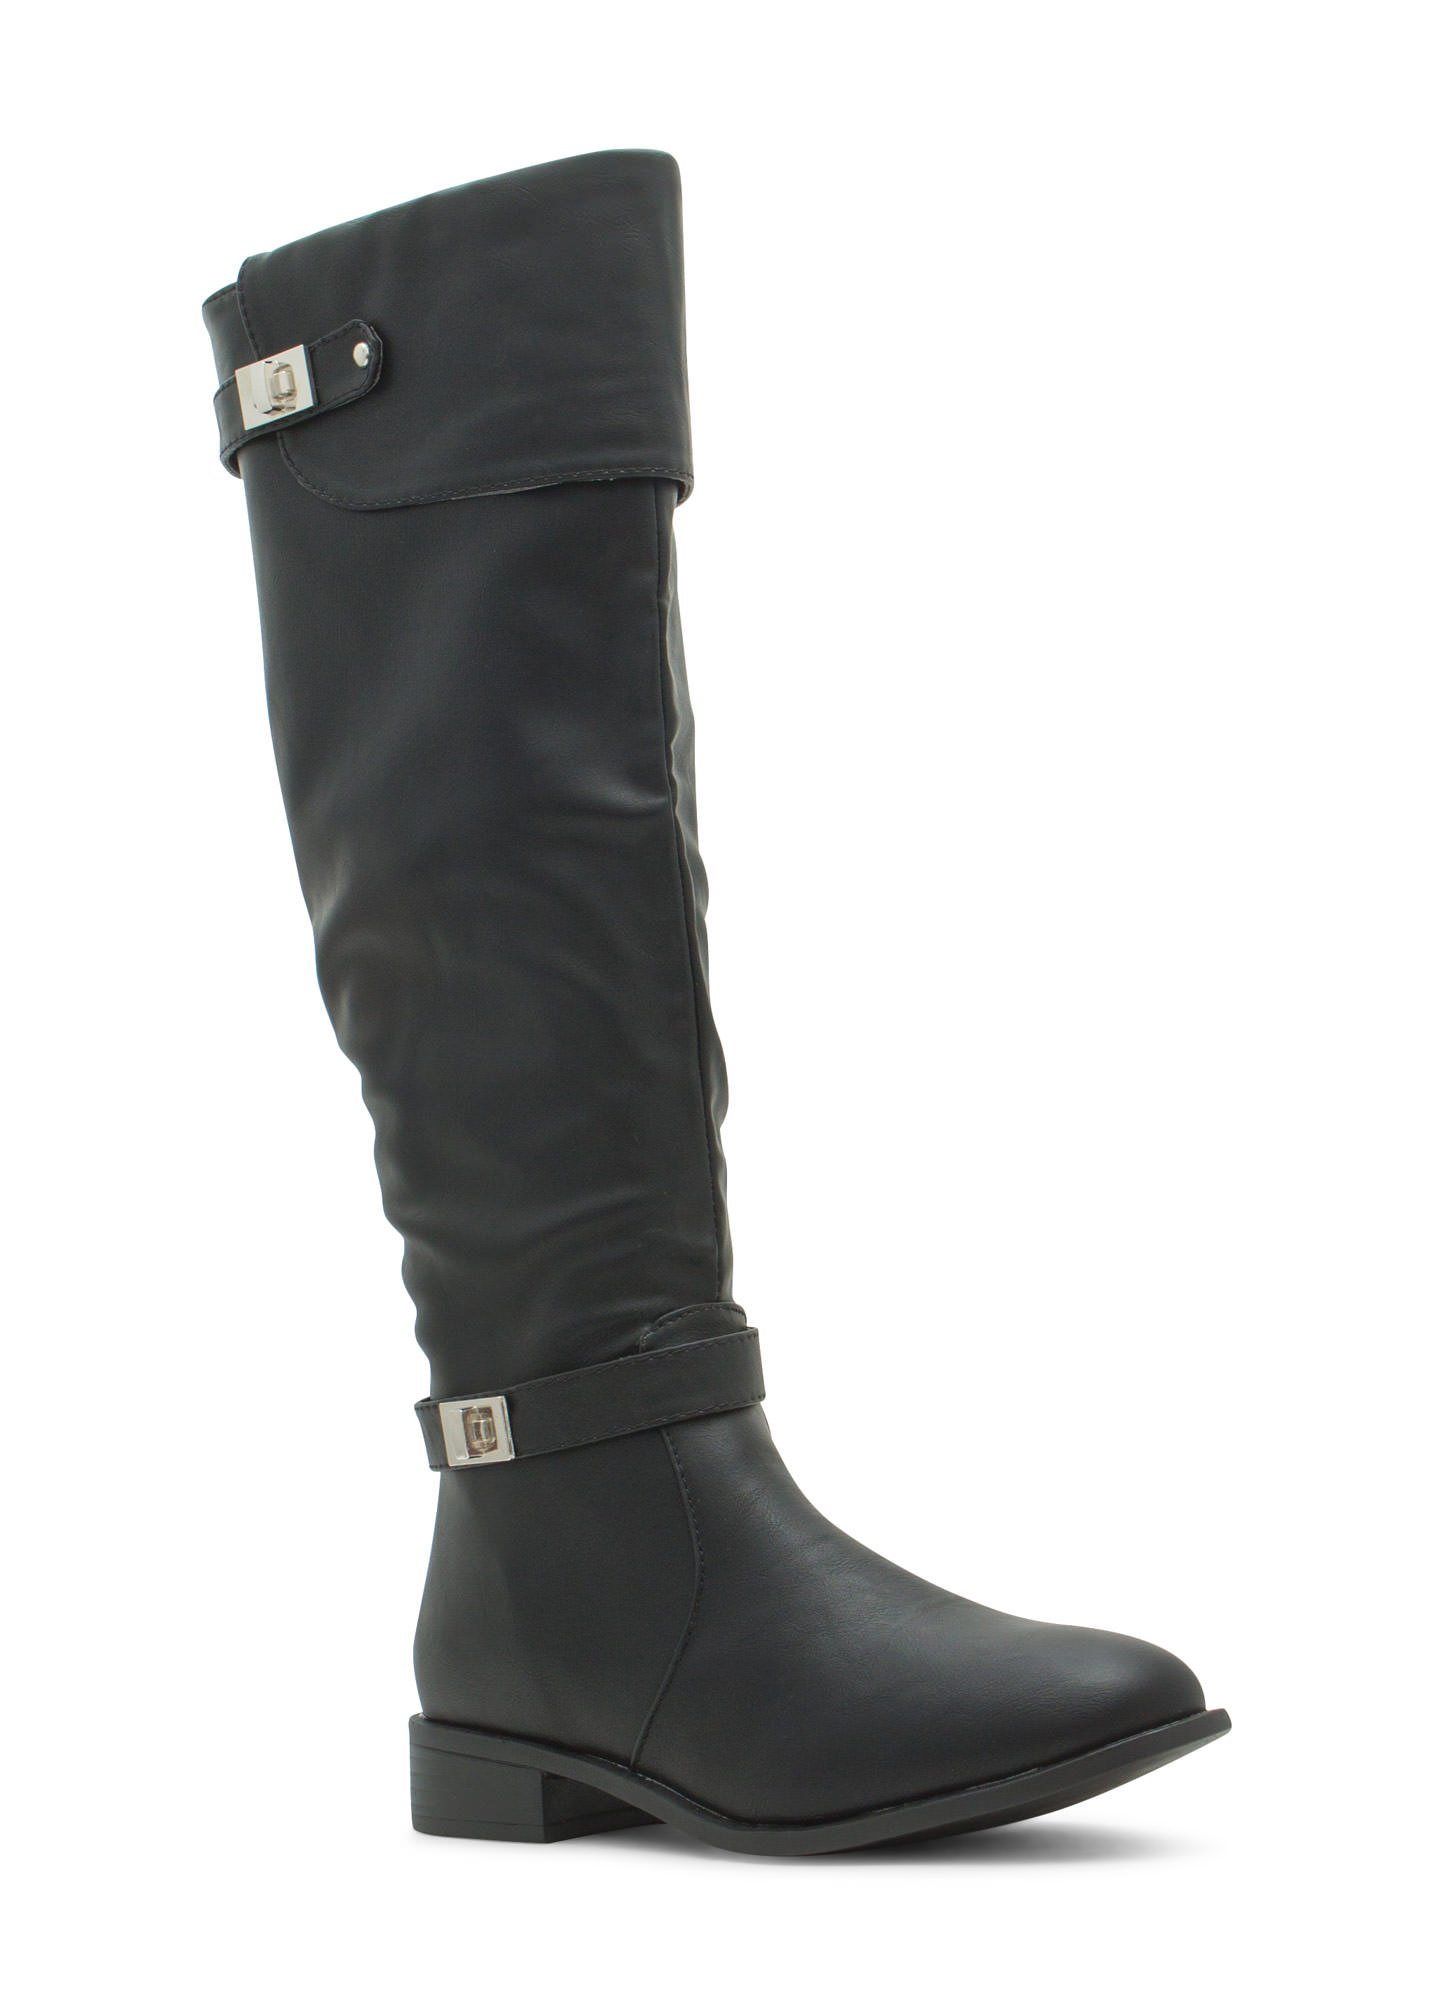 Double Twist Lock Cuffed Boots BLACK